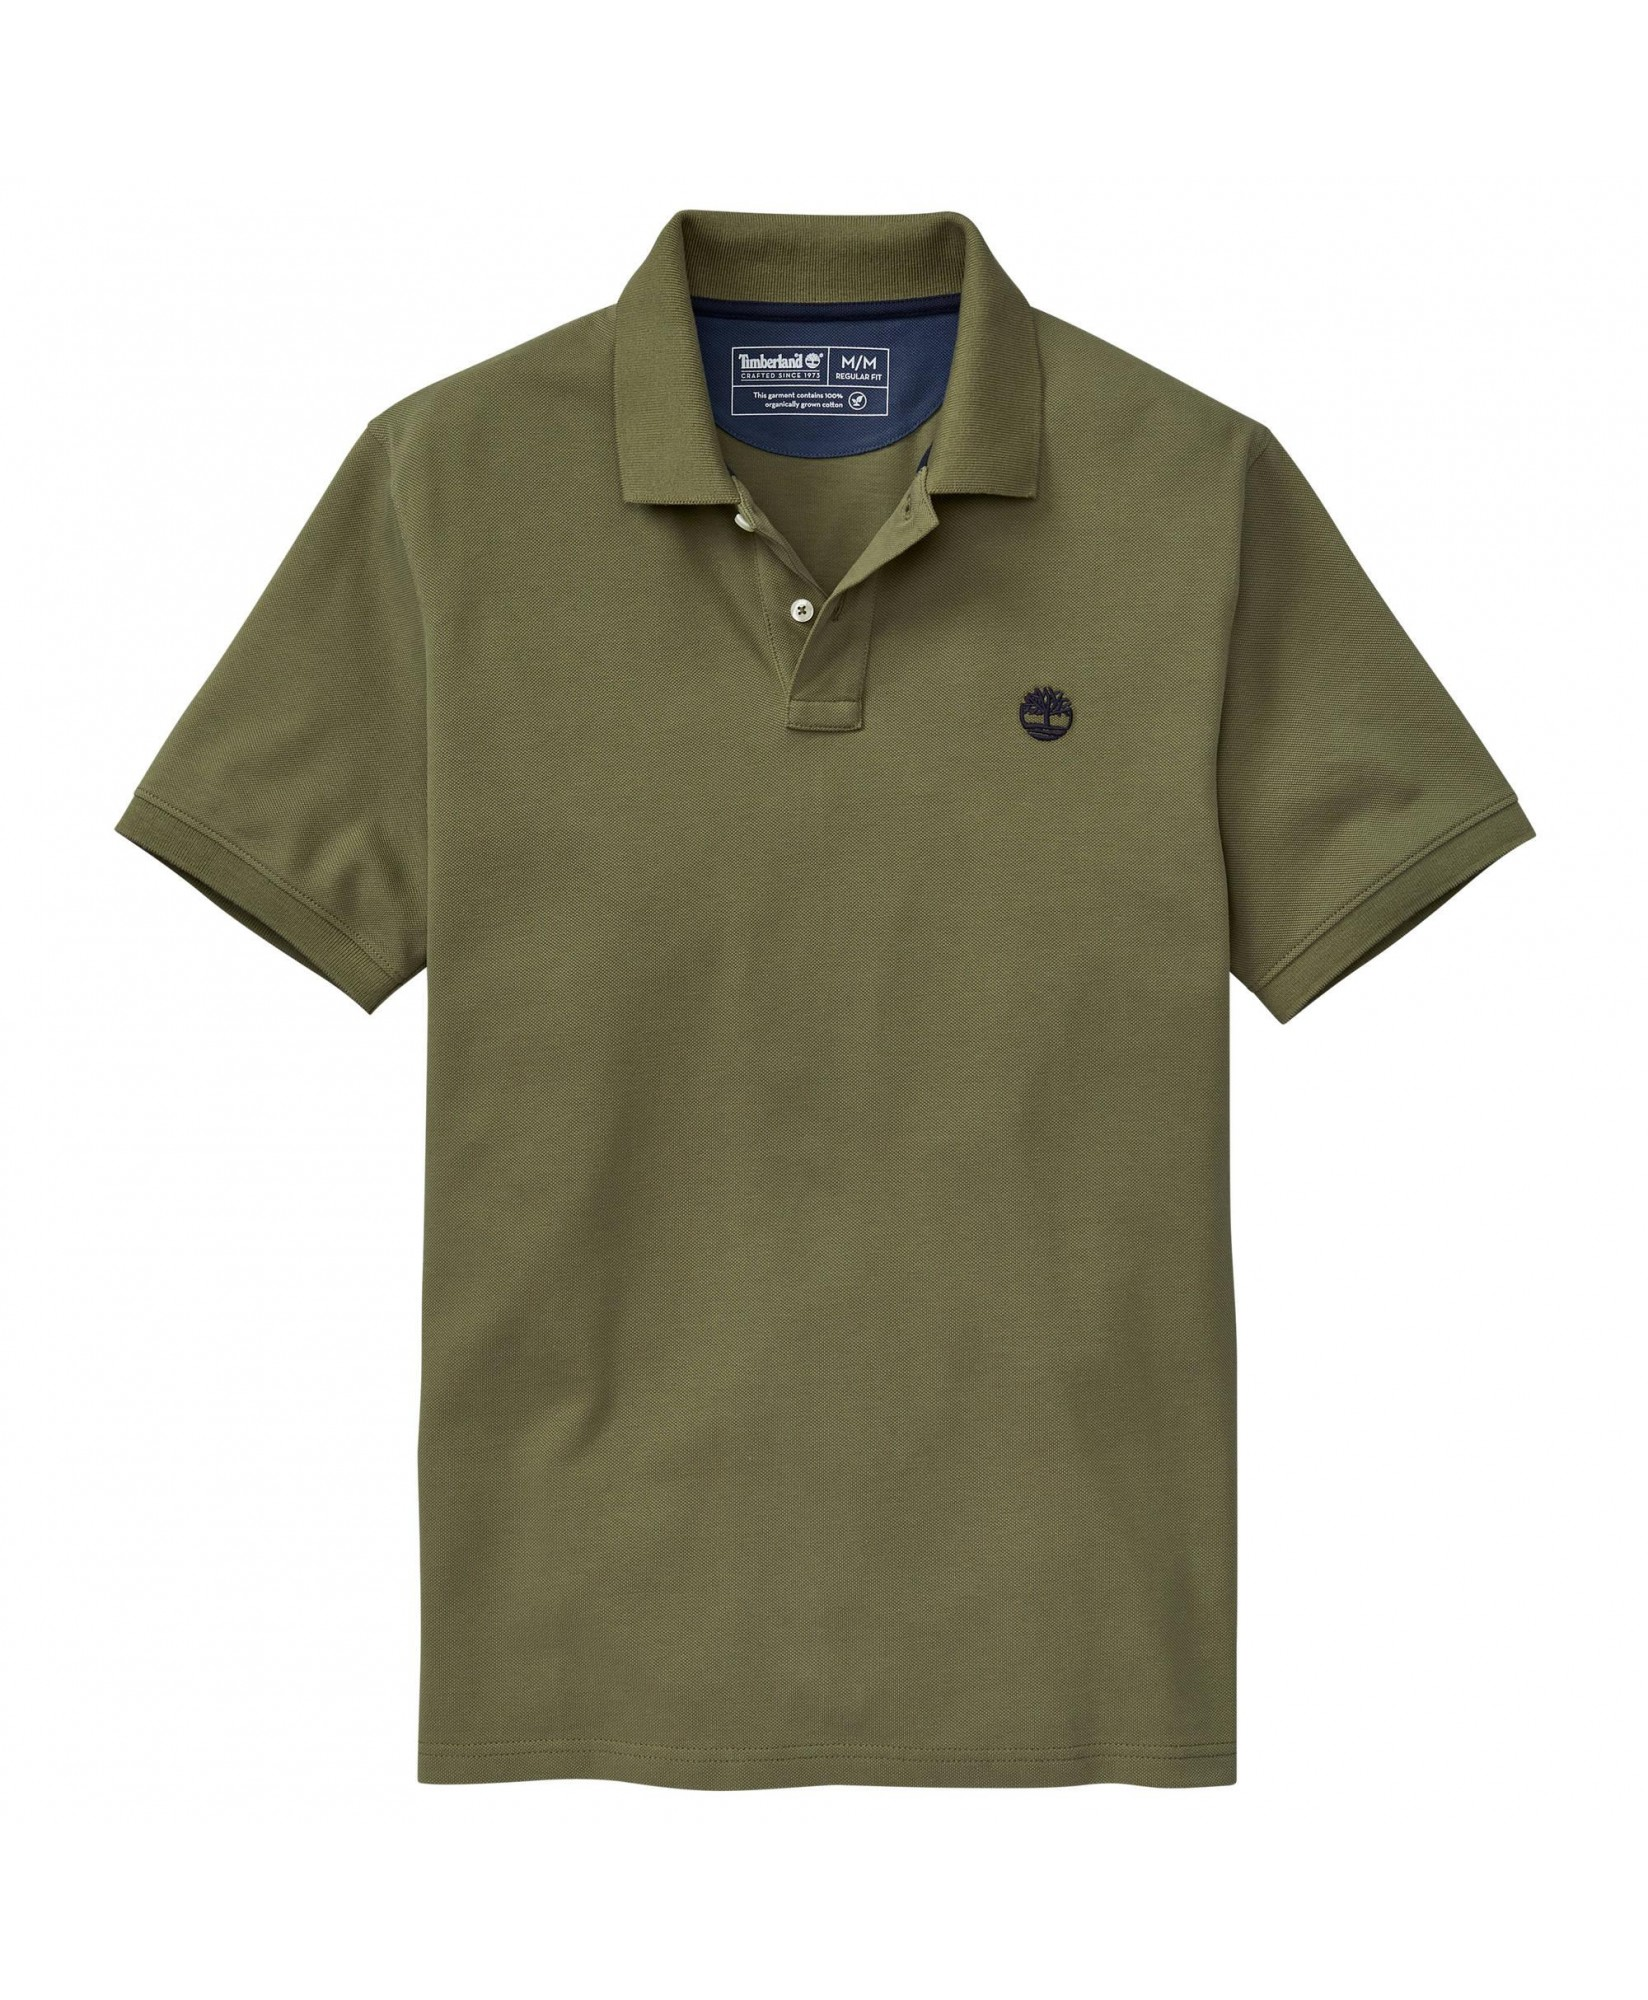 POLO MILLERS RIVERS POLO MILLERS RIVERS